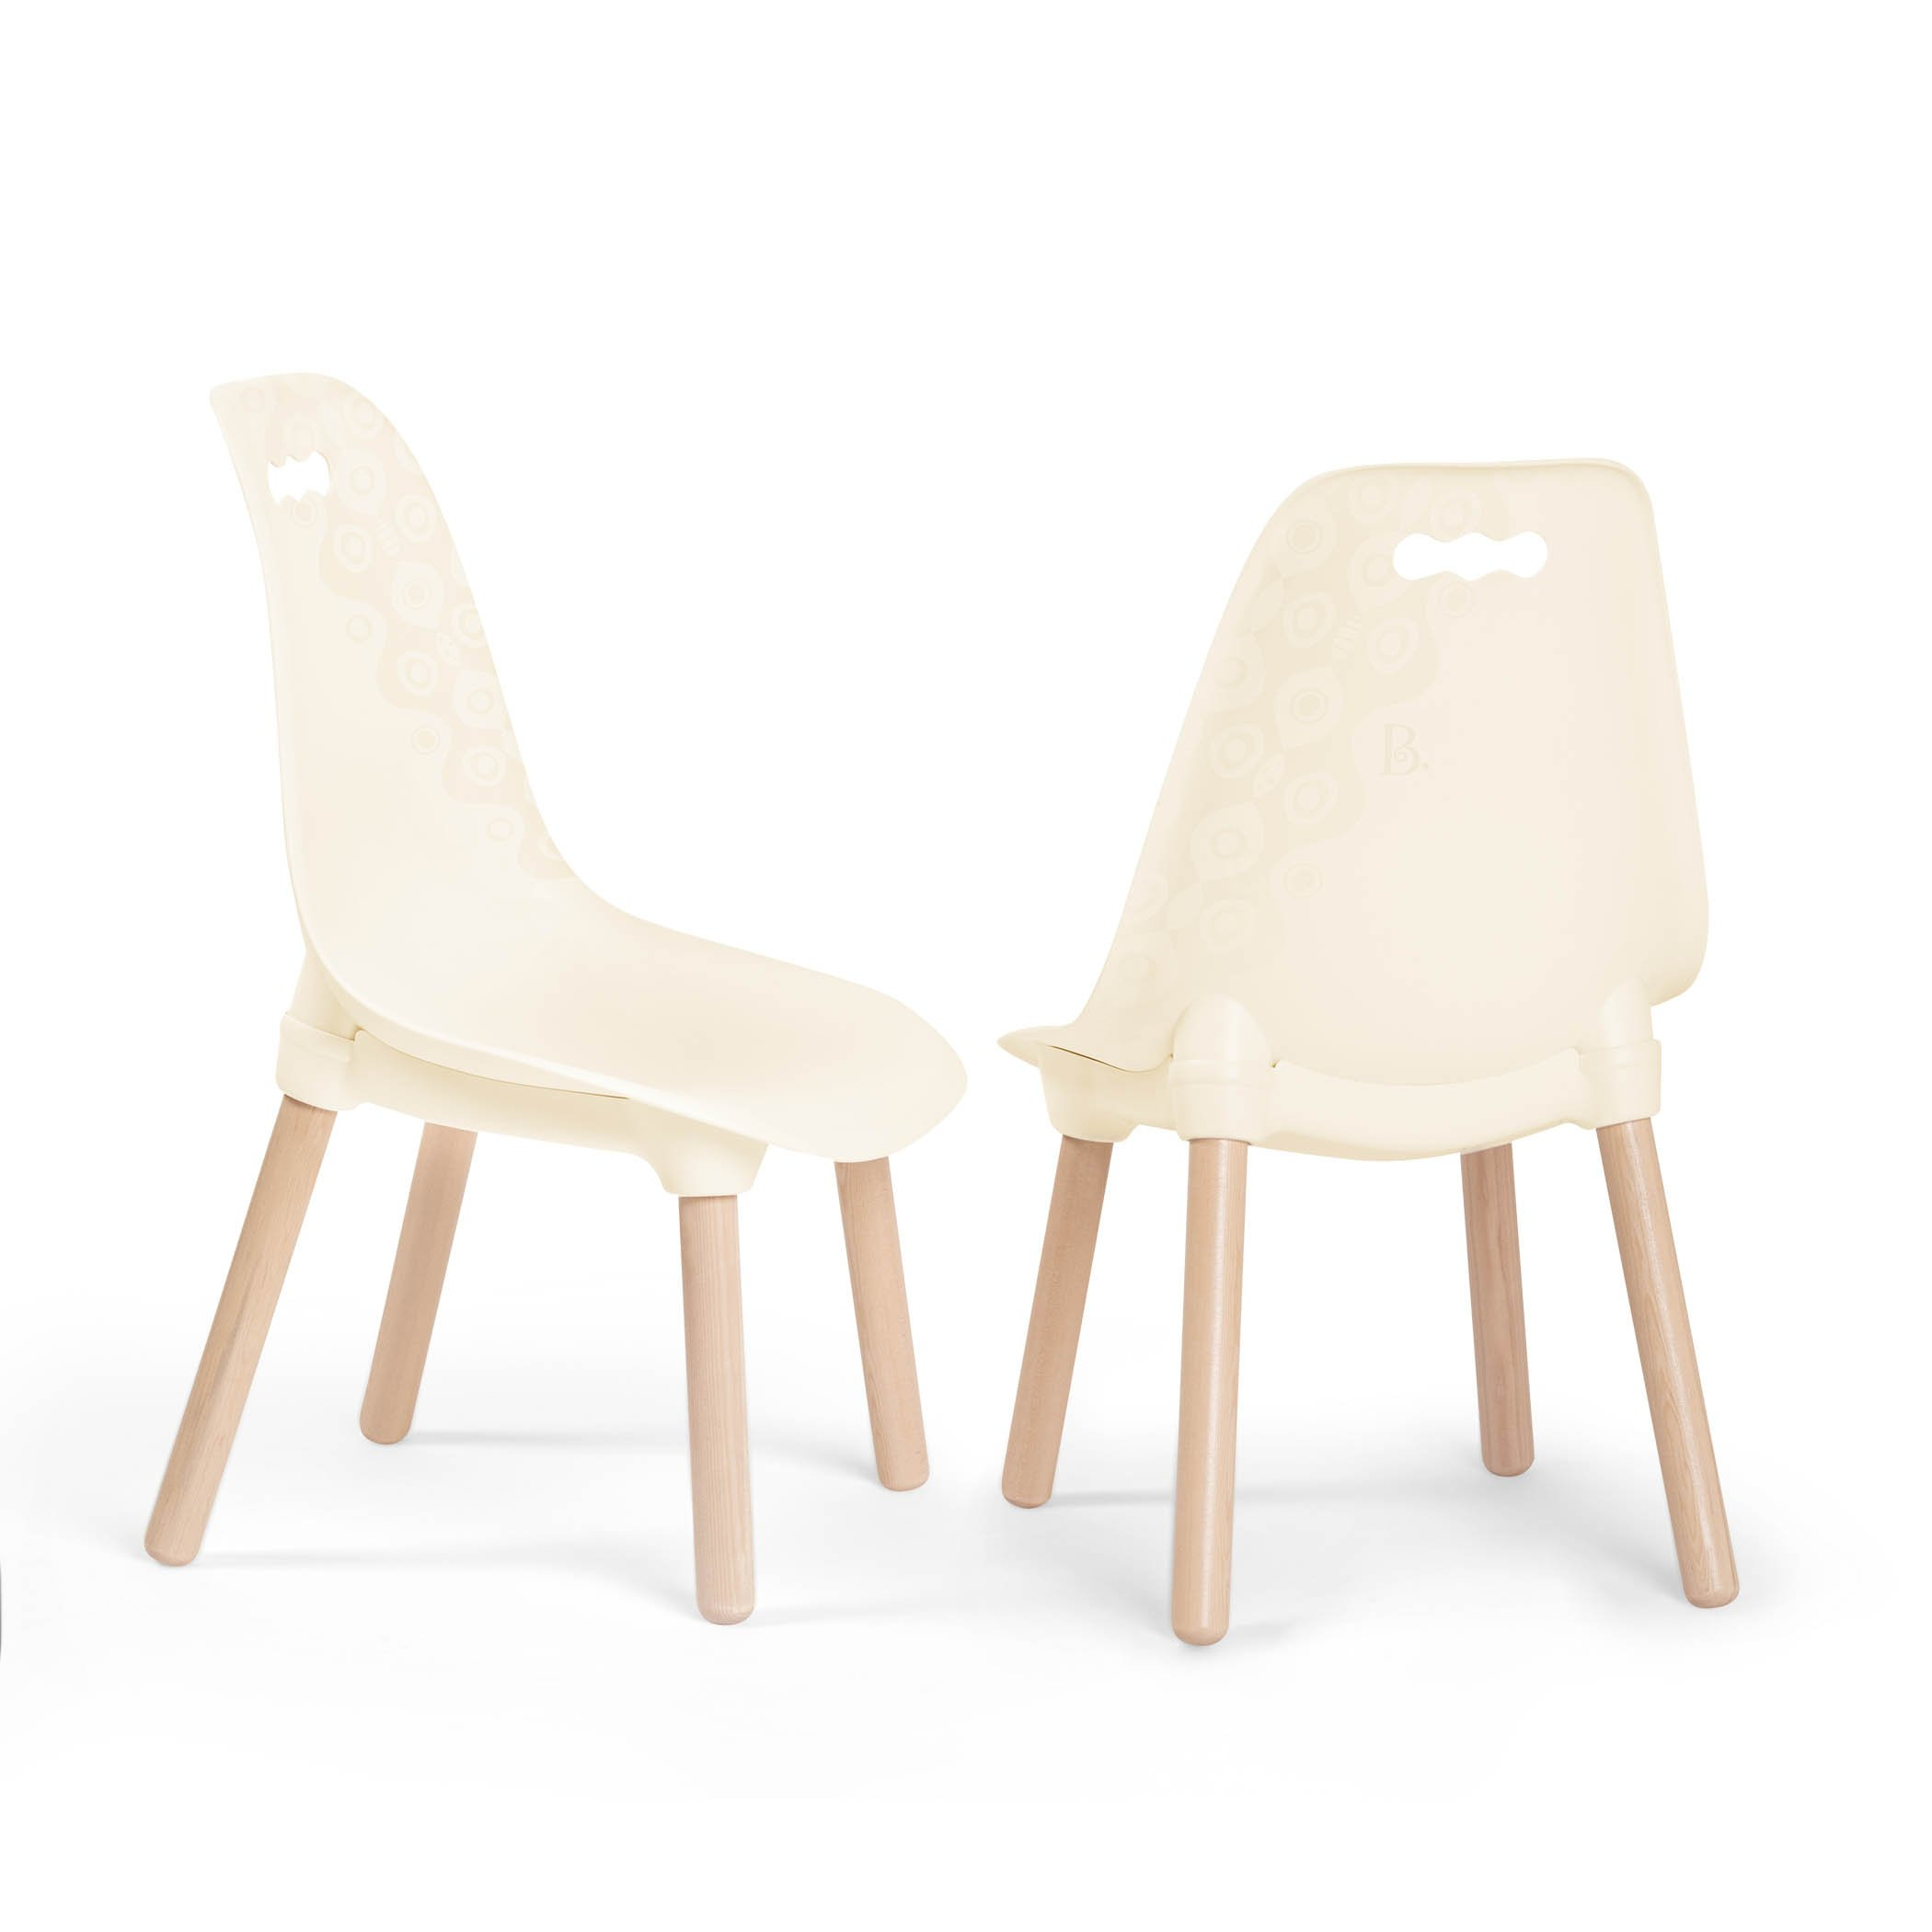 B. Spaces By Battat U2013 Kid Century Modern: Trendy Toddler Chair Set Of Two